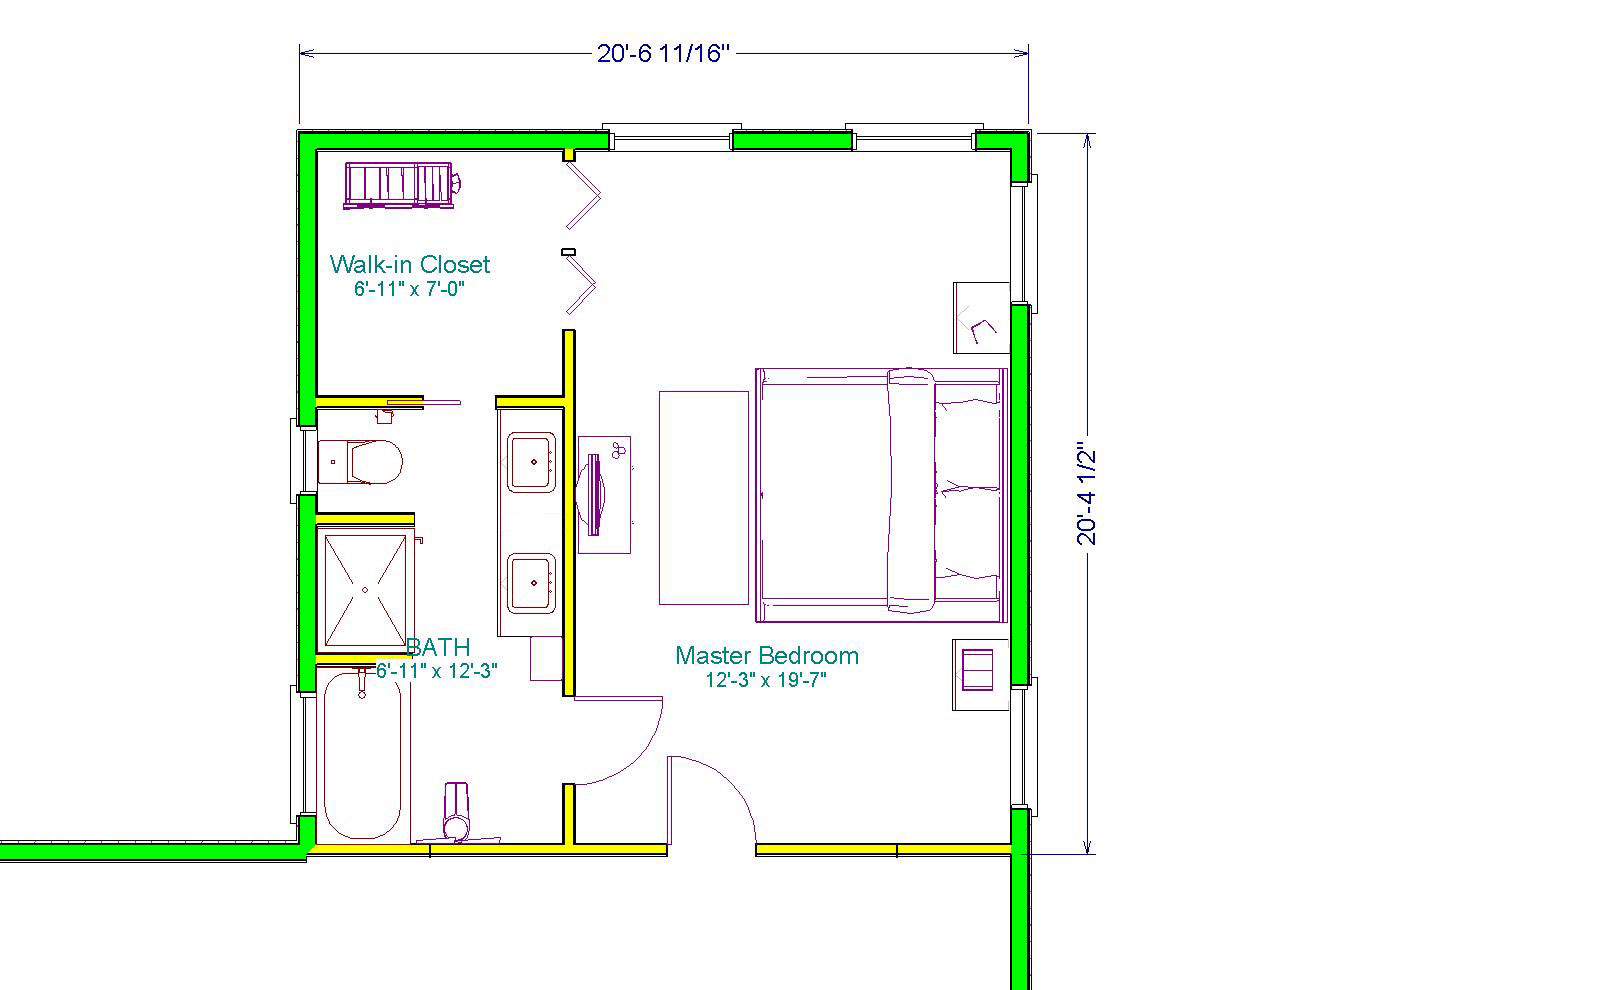 The executive master suite 400sq ft extensions simply additions How much to add master bedroom and bathroom